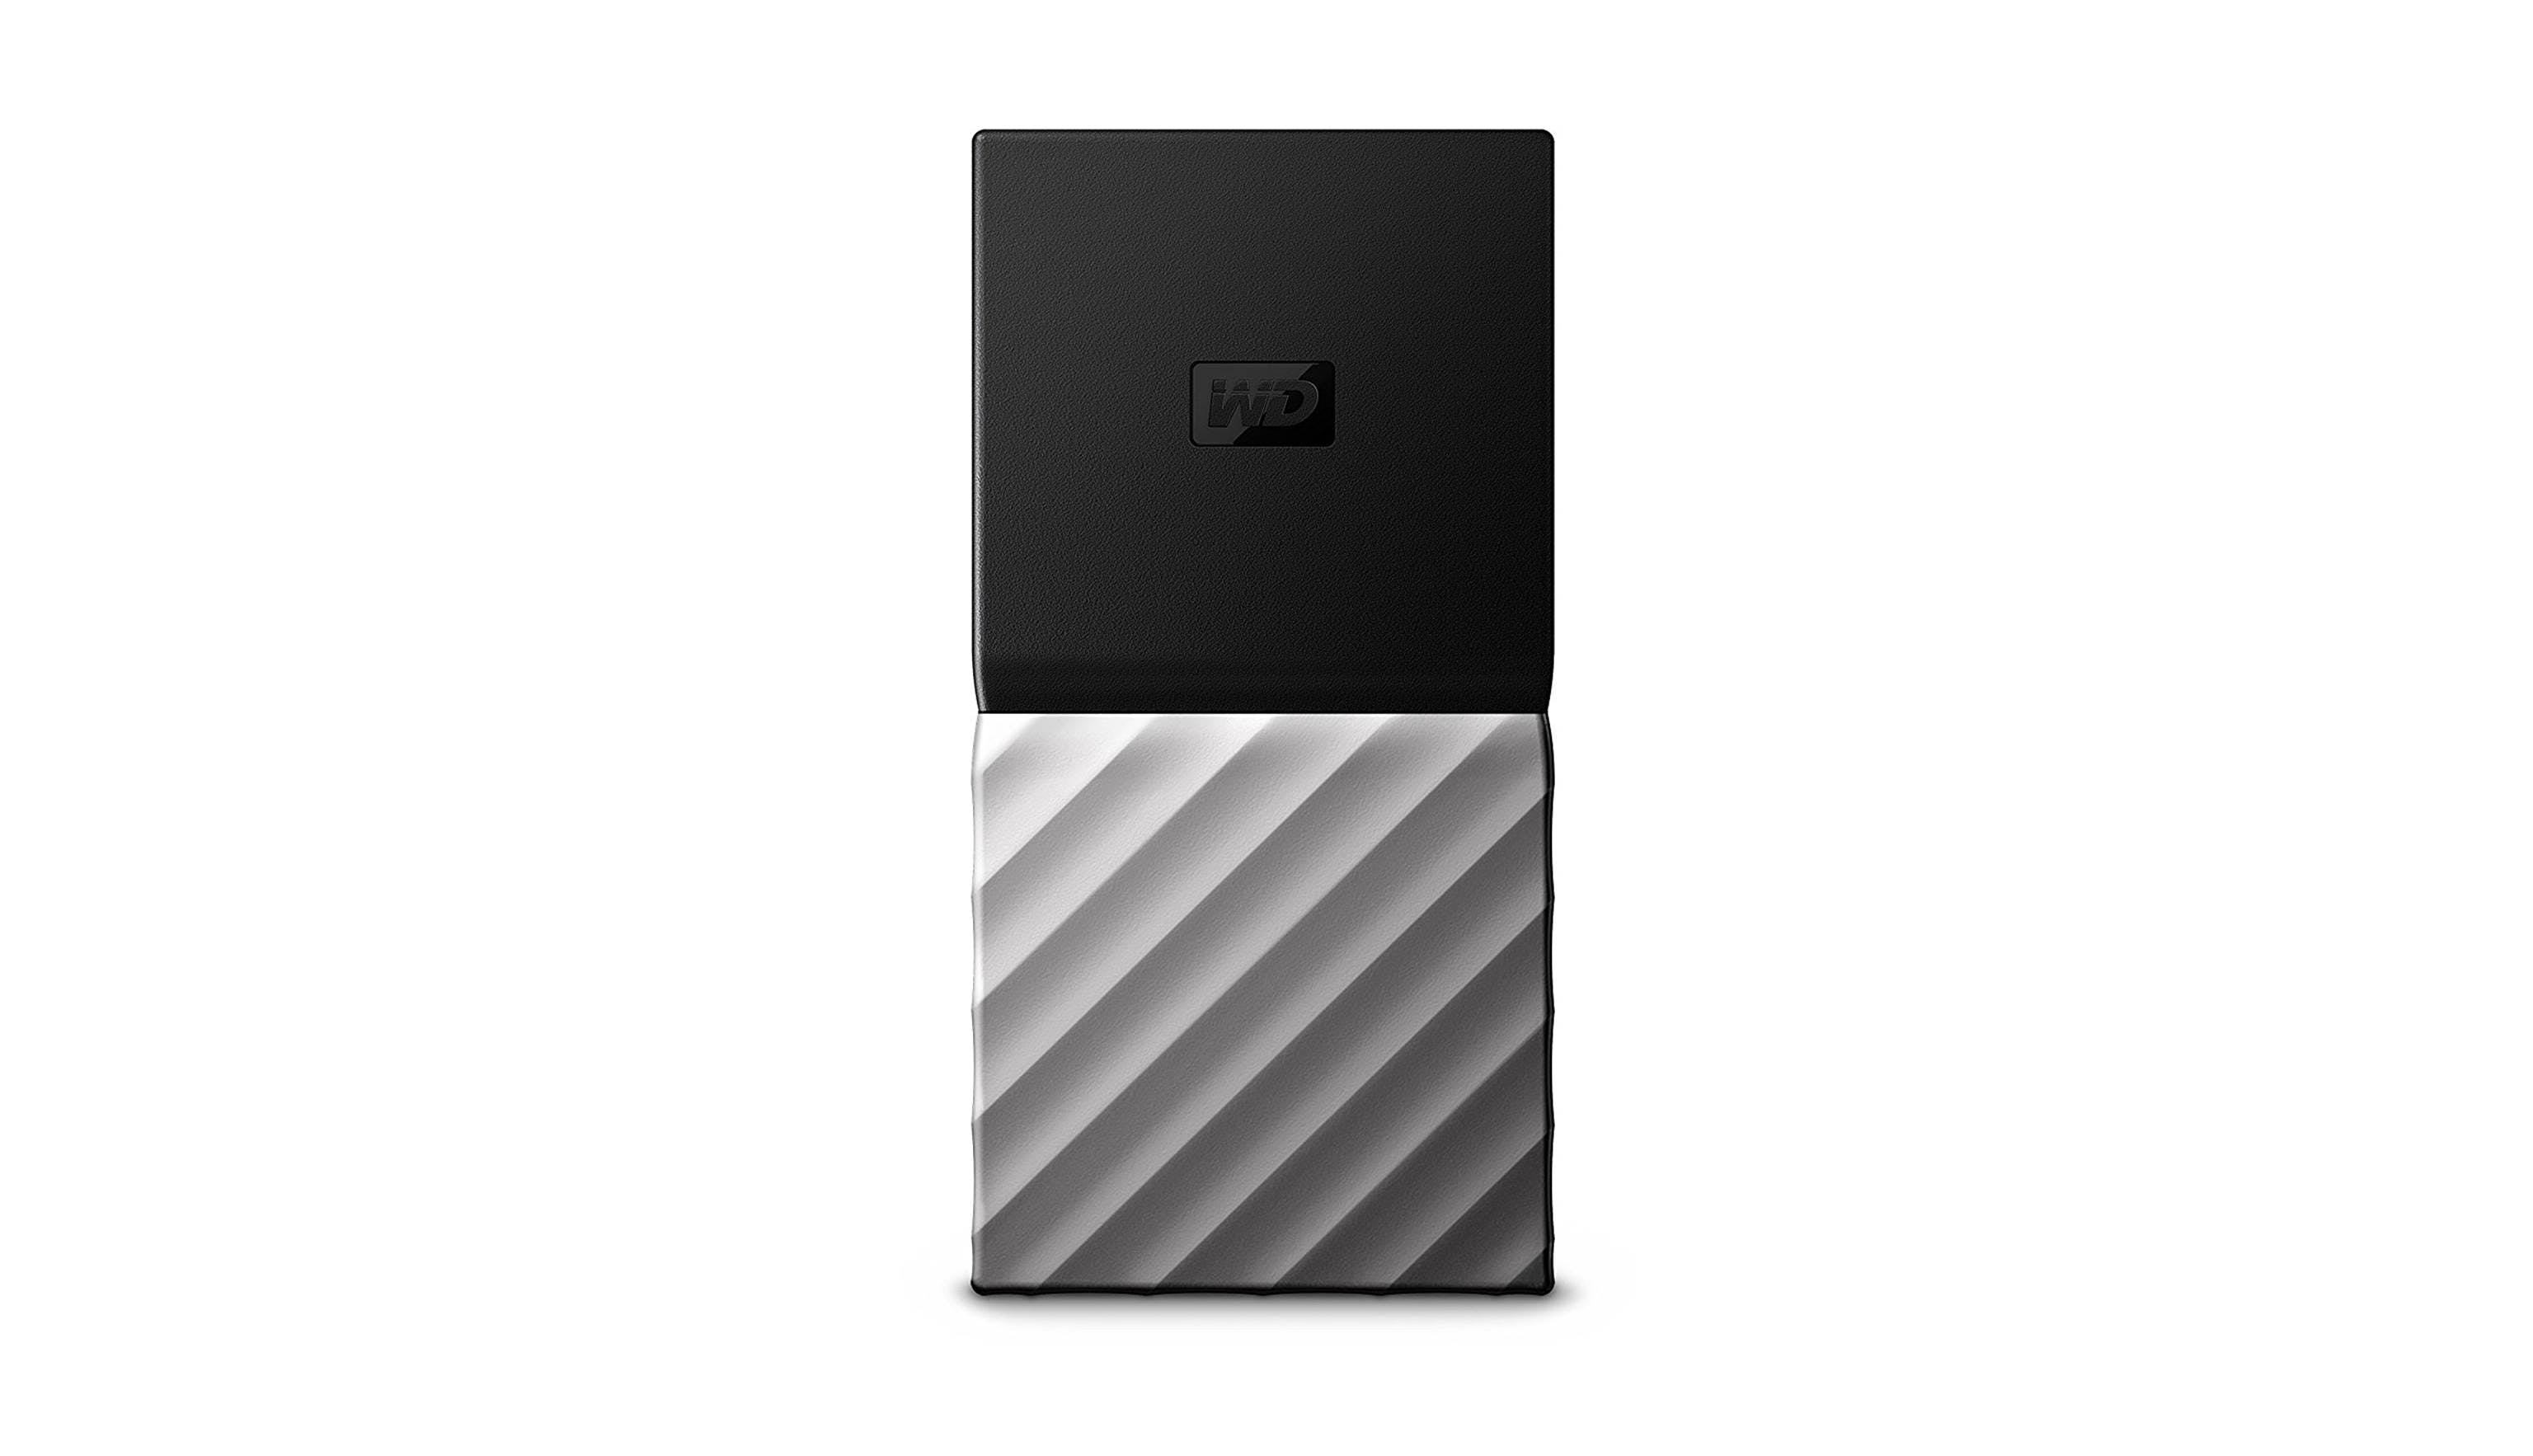 Wd Wdbk3e0010psl My Passport 1tb Ssd Portable Storage Harvey Silver